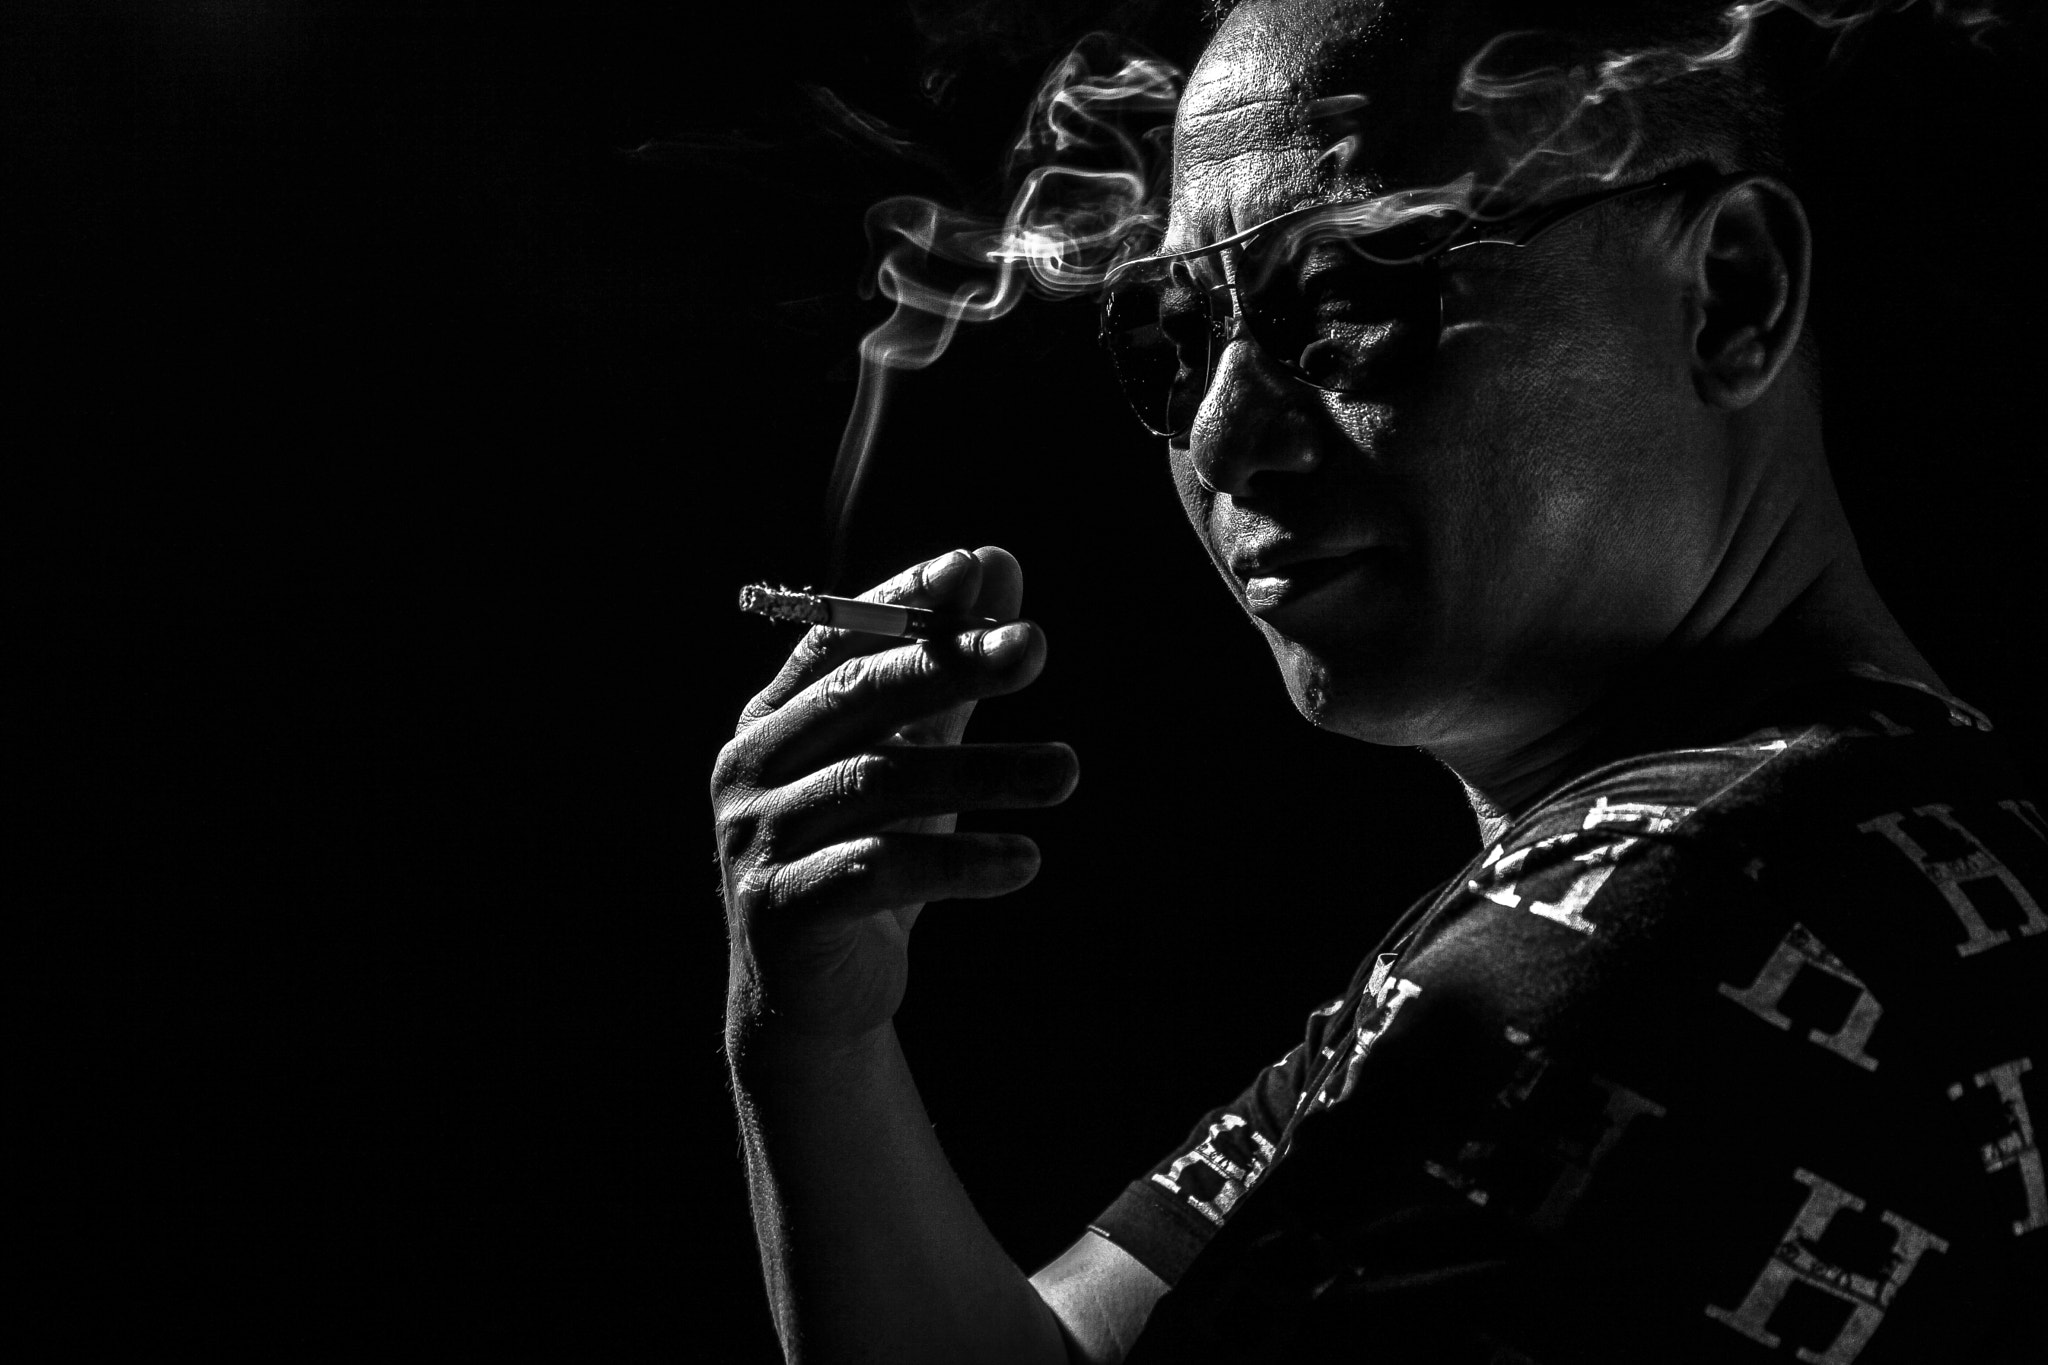 Photograph smoke by kokunrres Chen on 500px